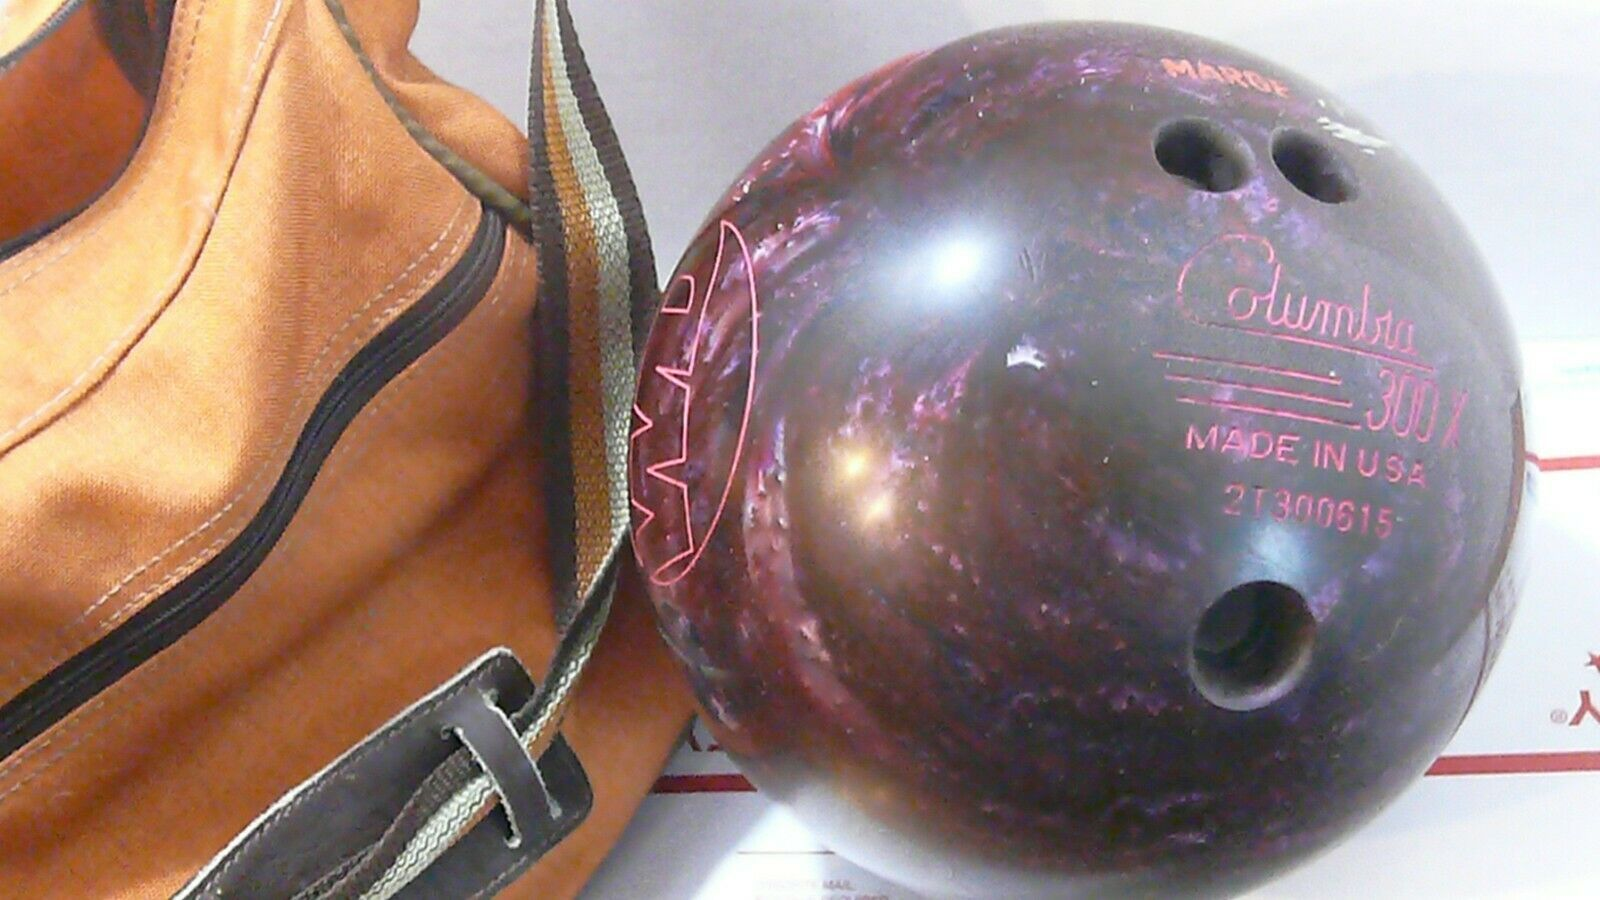 Primary image for Columbia 300X Purple Galaxy 11Lb Ball and Sling Bag - Good Pre-Owned Condtion